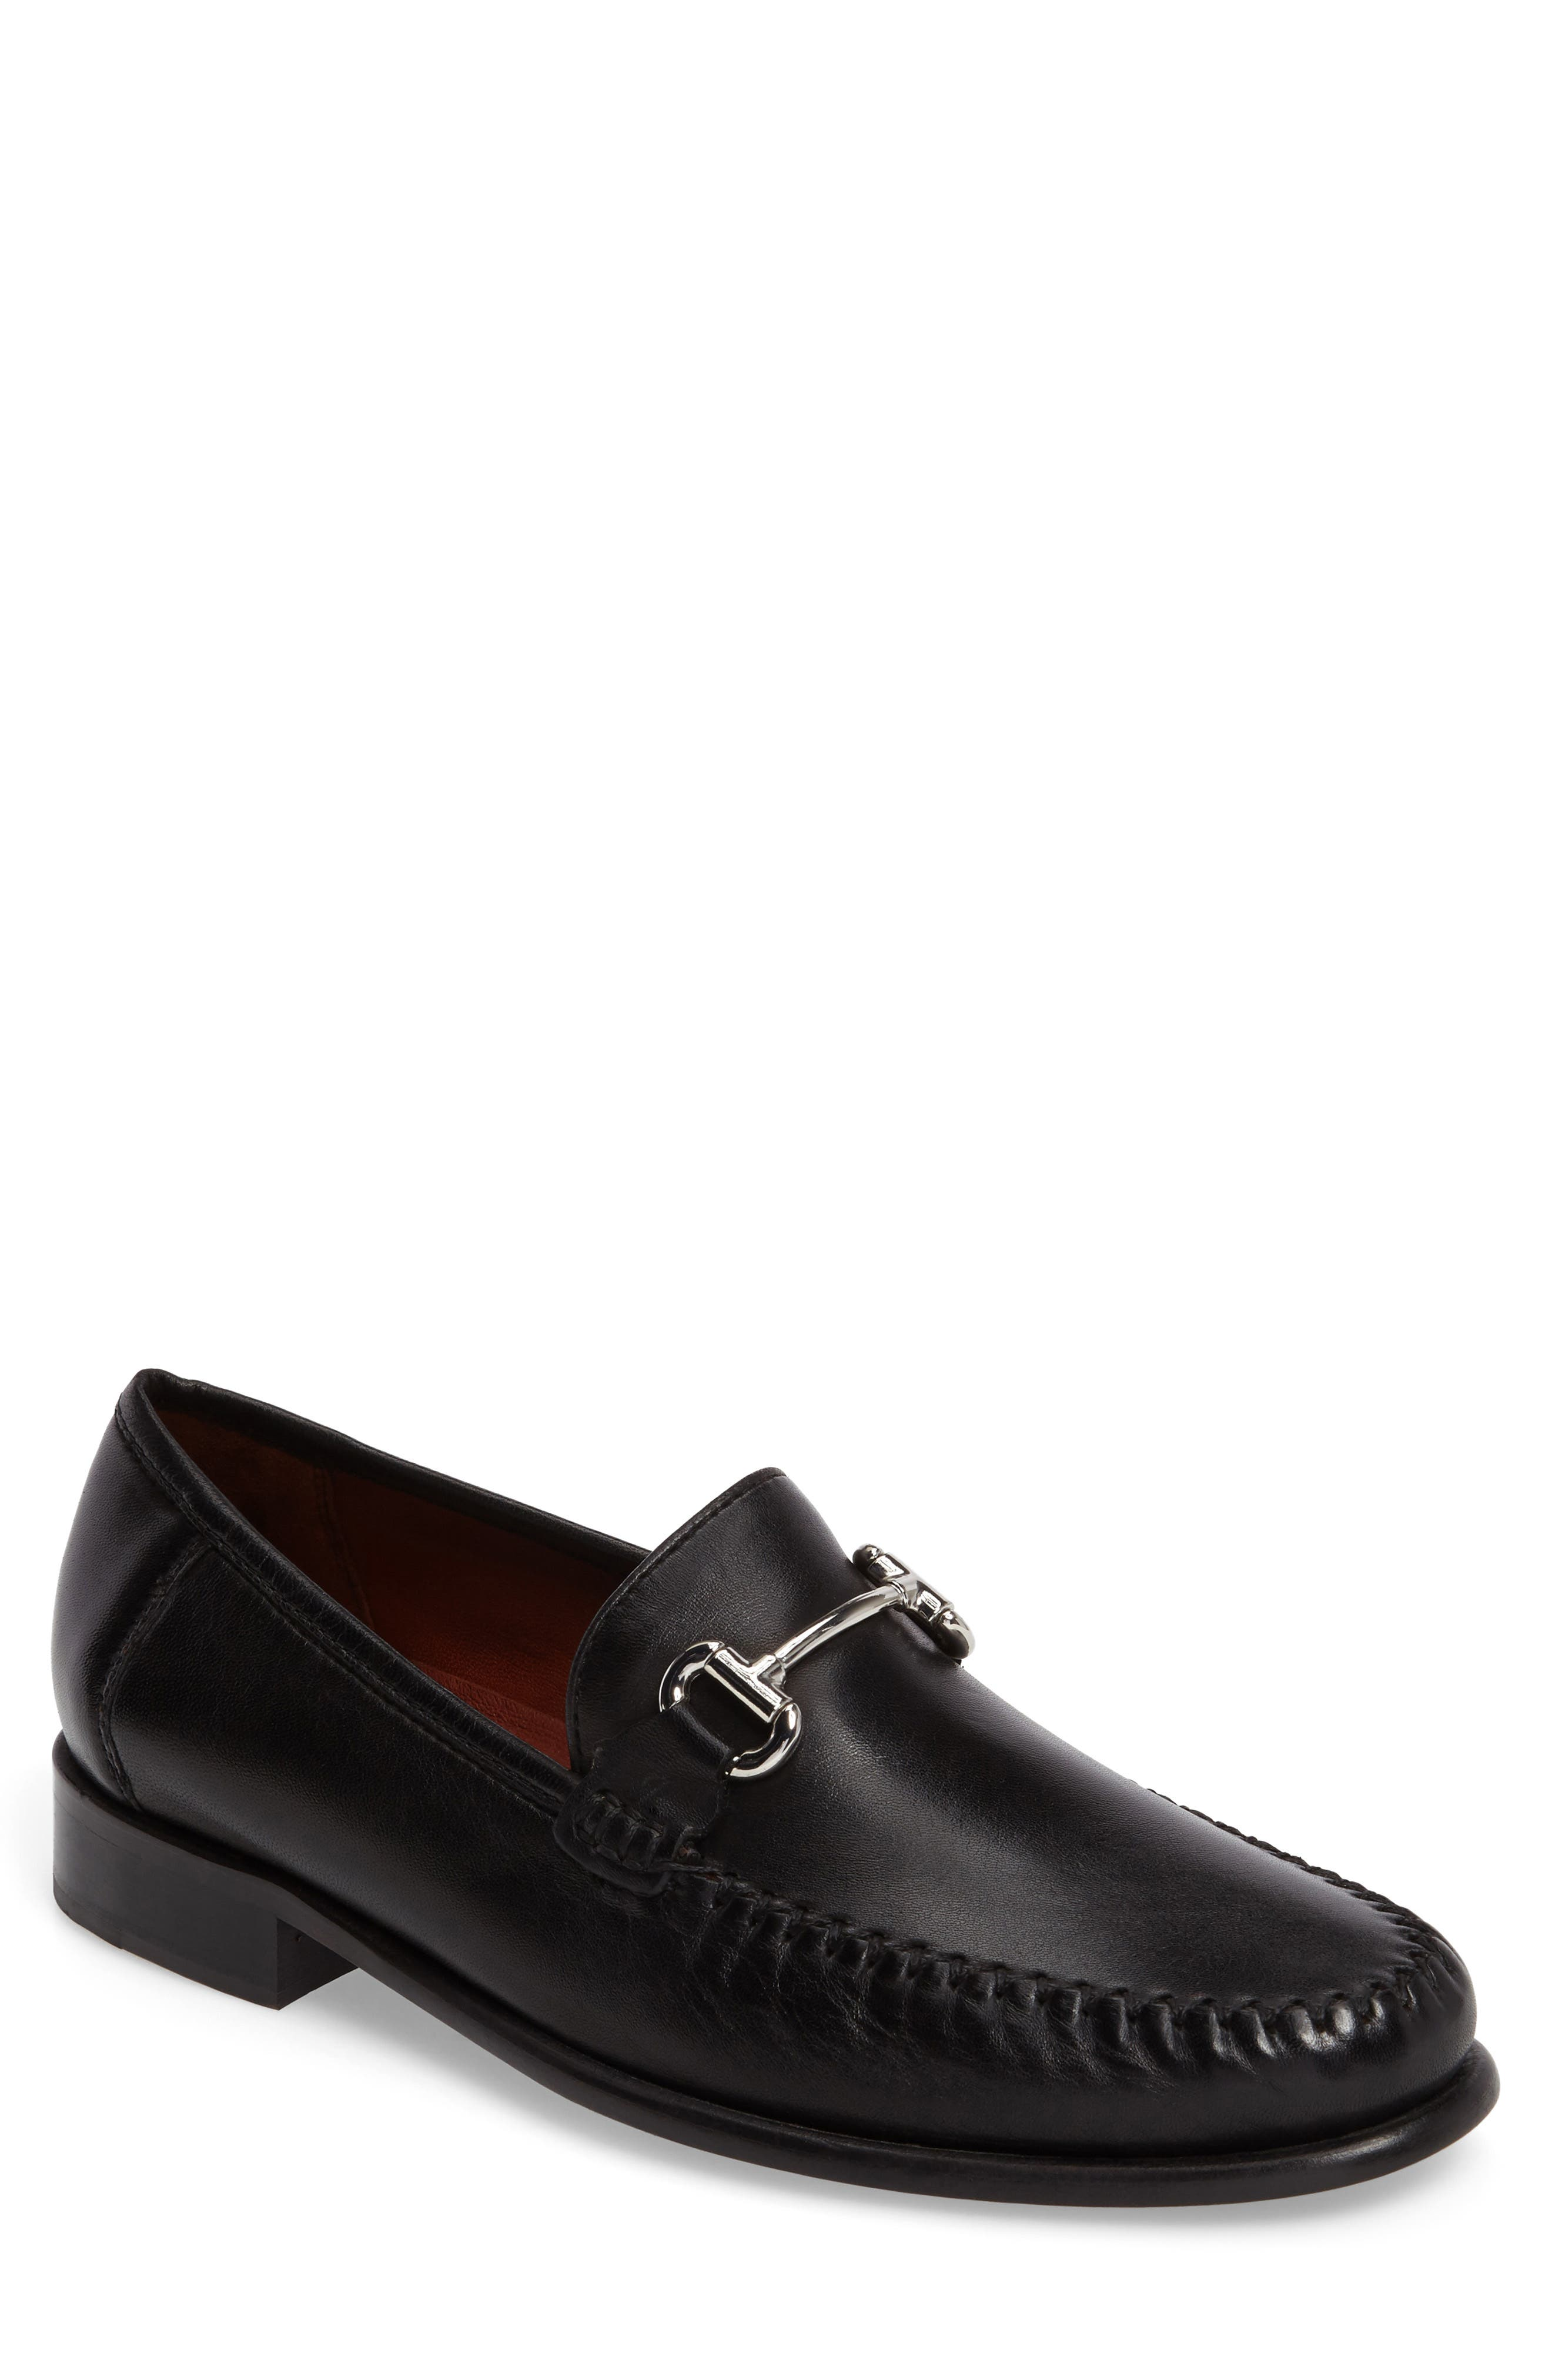 Main Image - Robert Zur Elton Bit Loafer (Men)